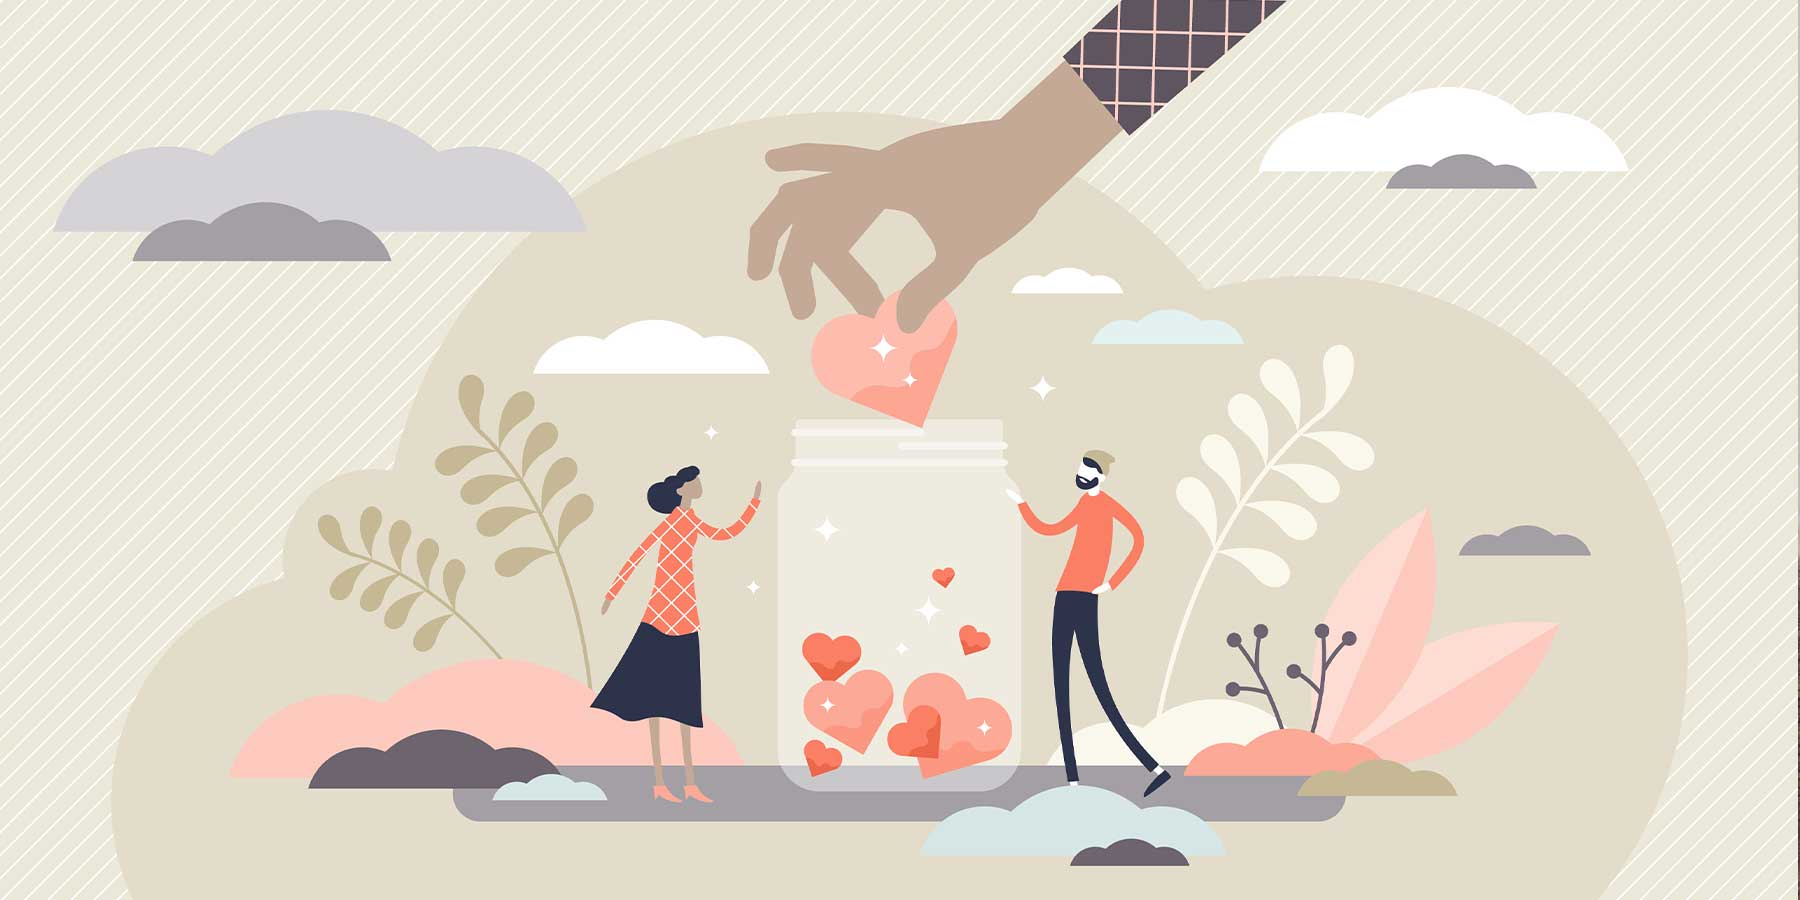 helping others can improve your wellbeing